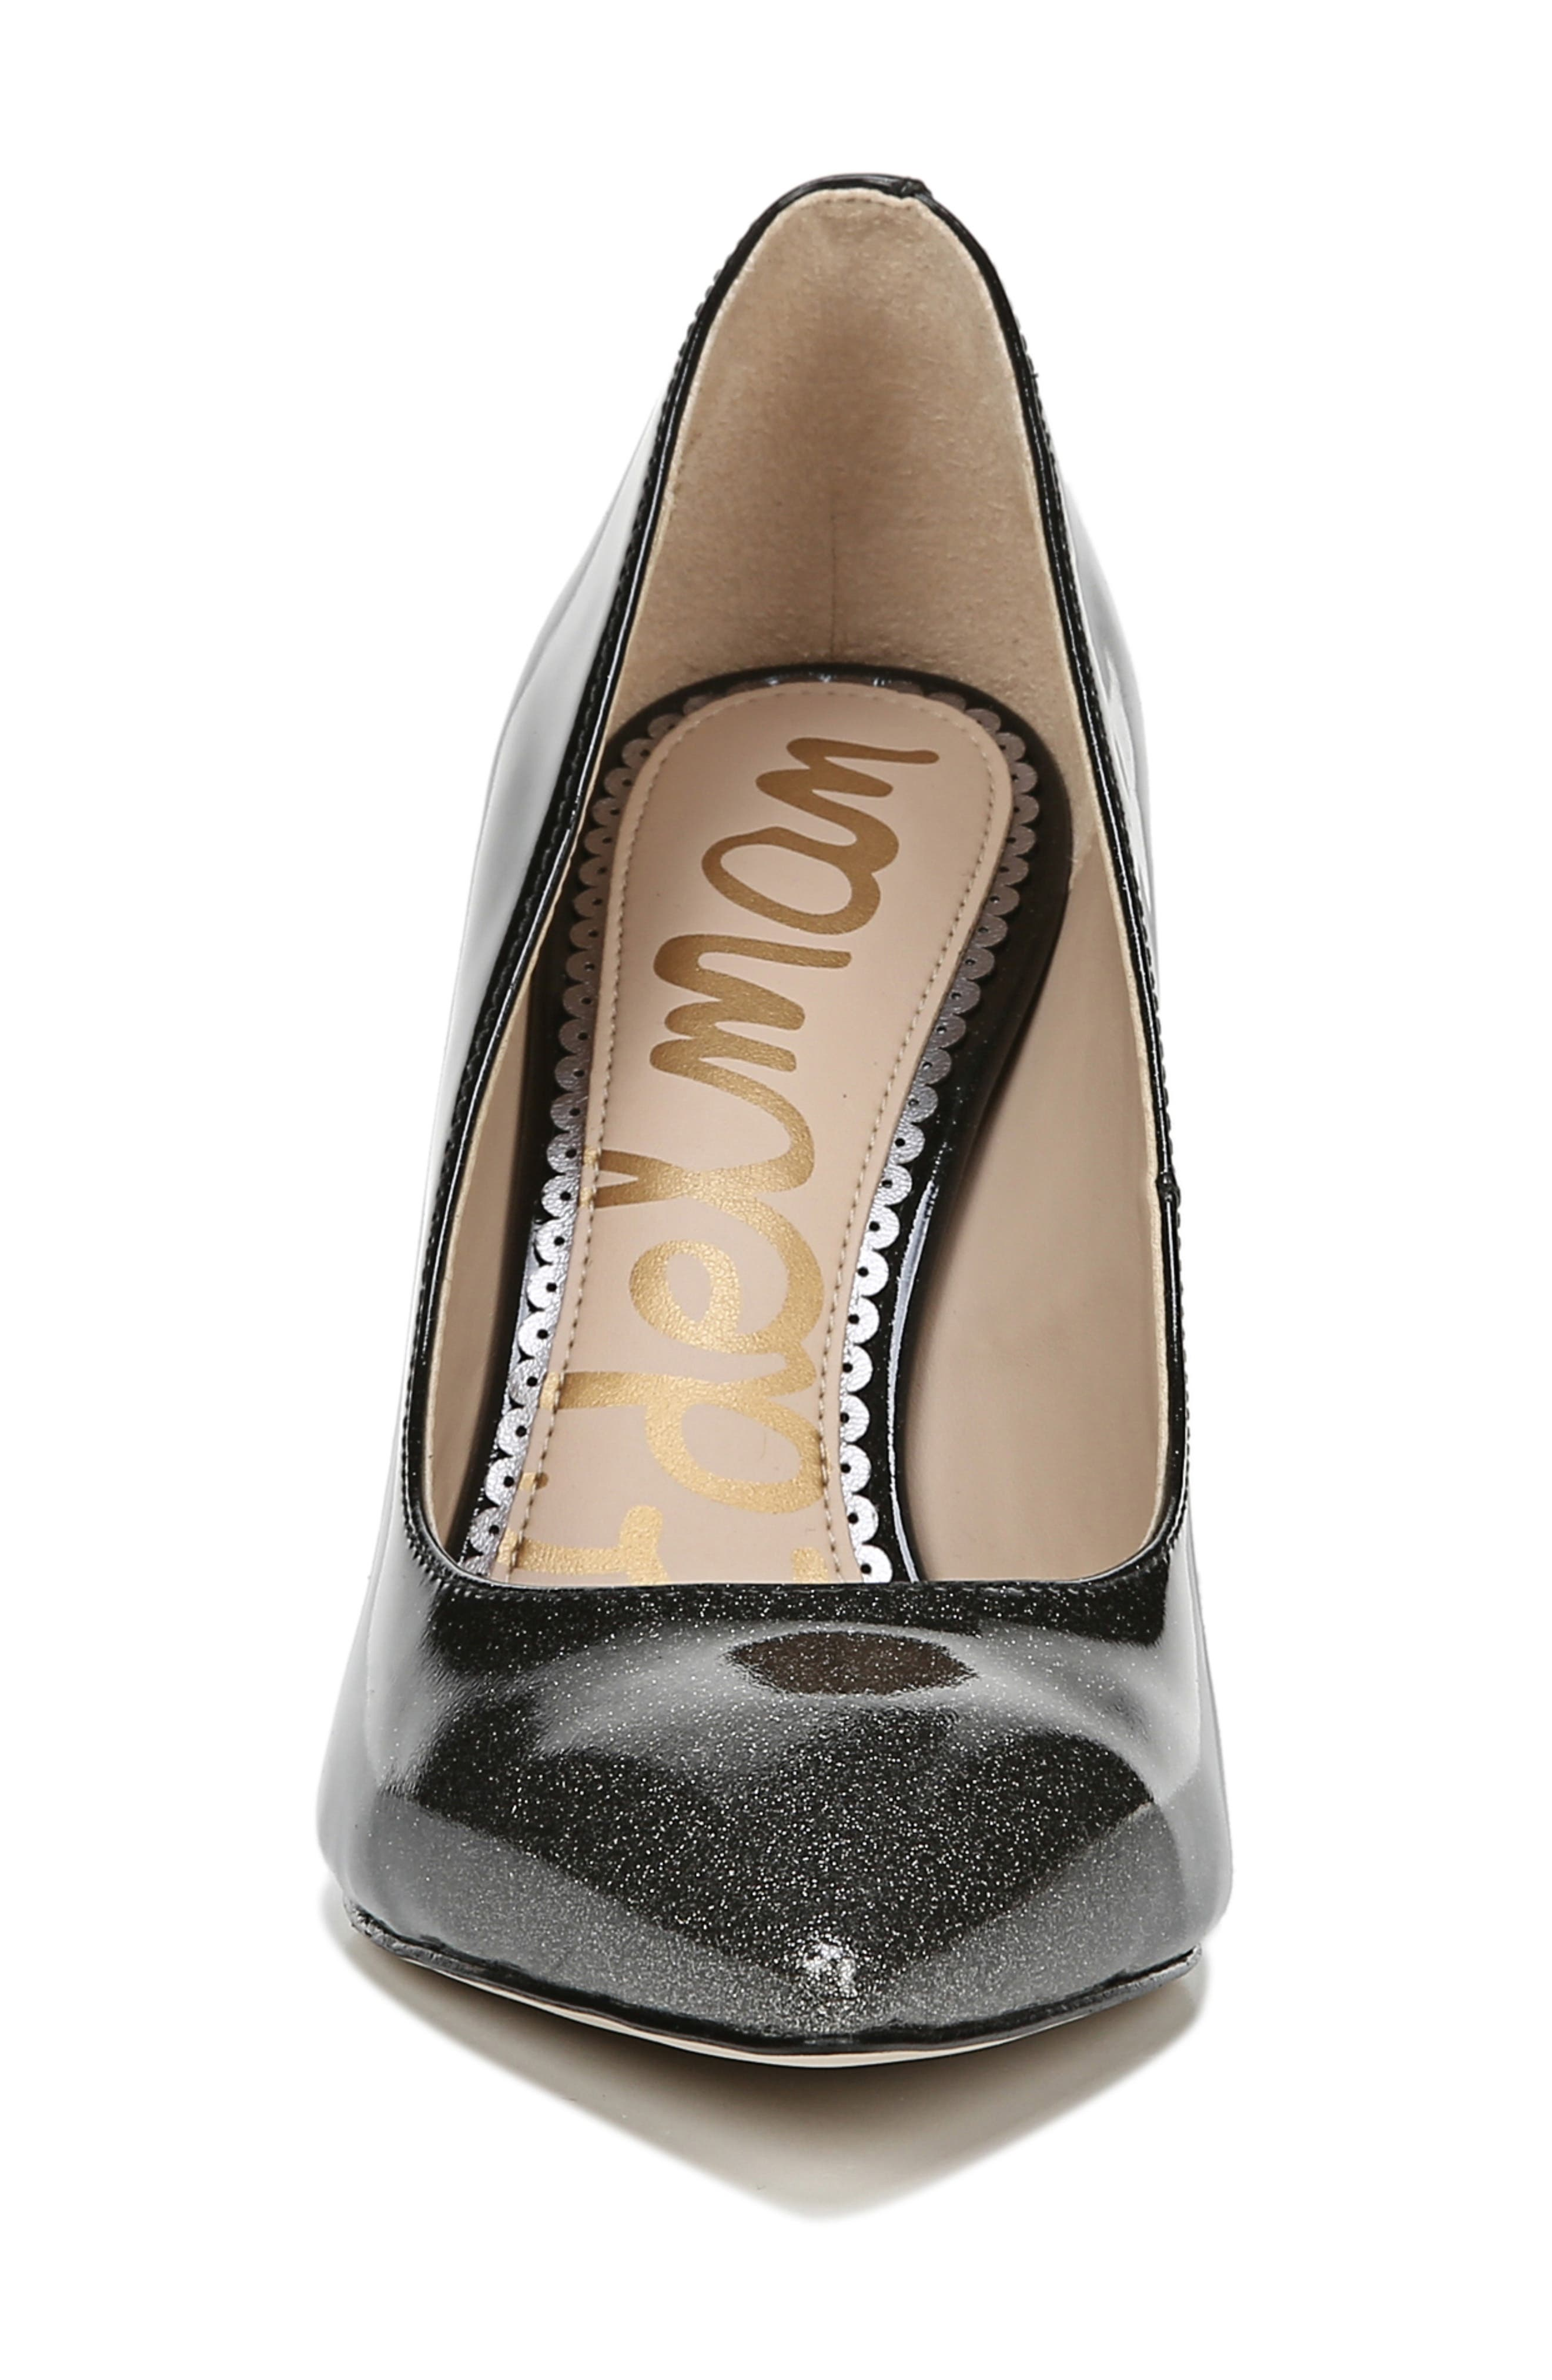 SAM EDELMAN, Hazel Pointy Toe Pump, Alternate thumbnail 3, color, BLACK/ SILVER